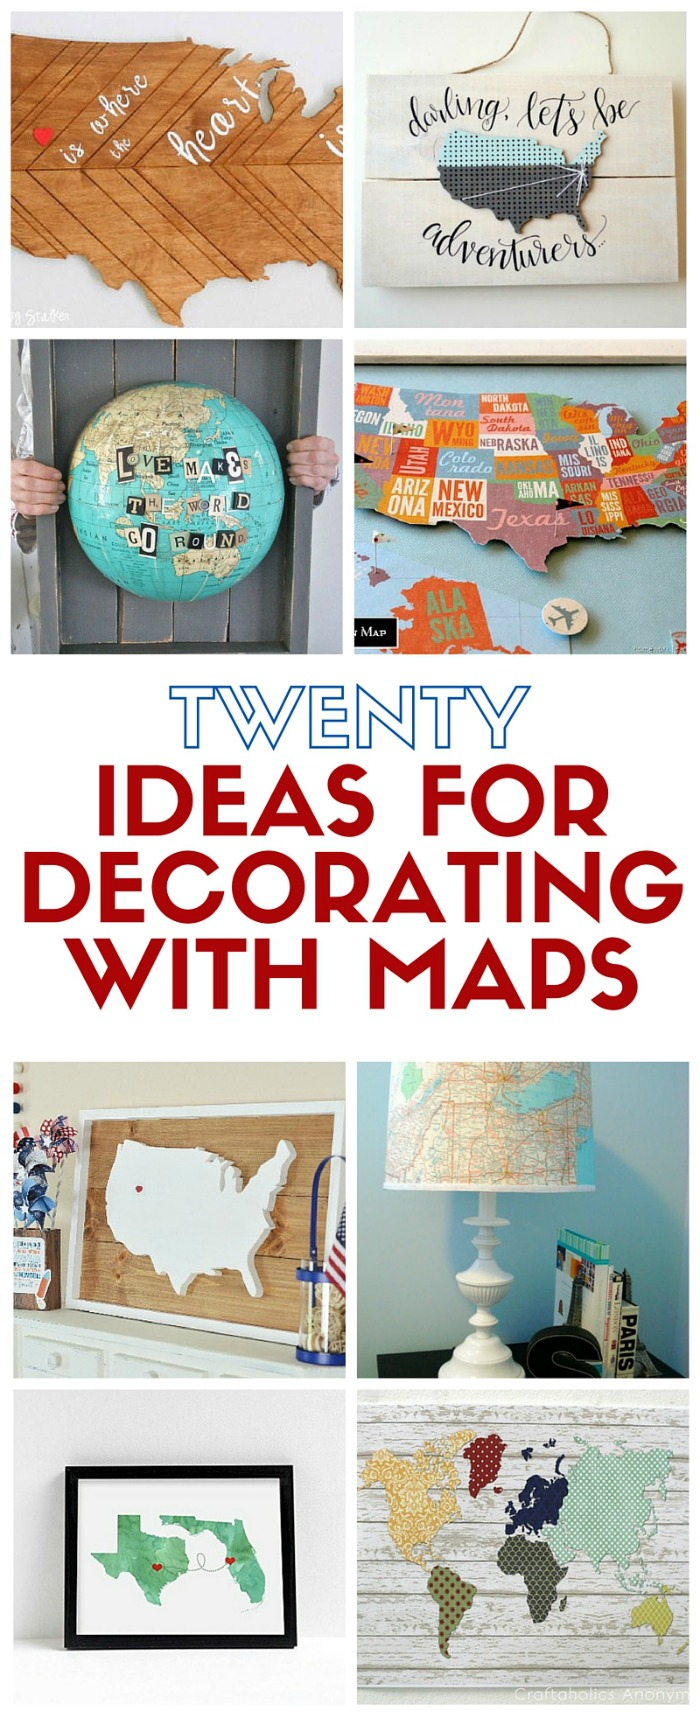 20 Ideas For Decorating With Maps The Crafty Blog Stalker